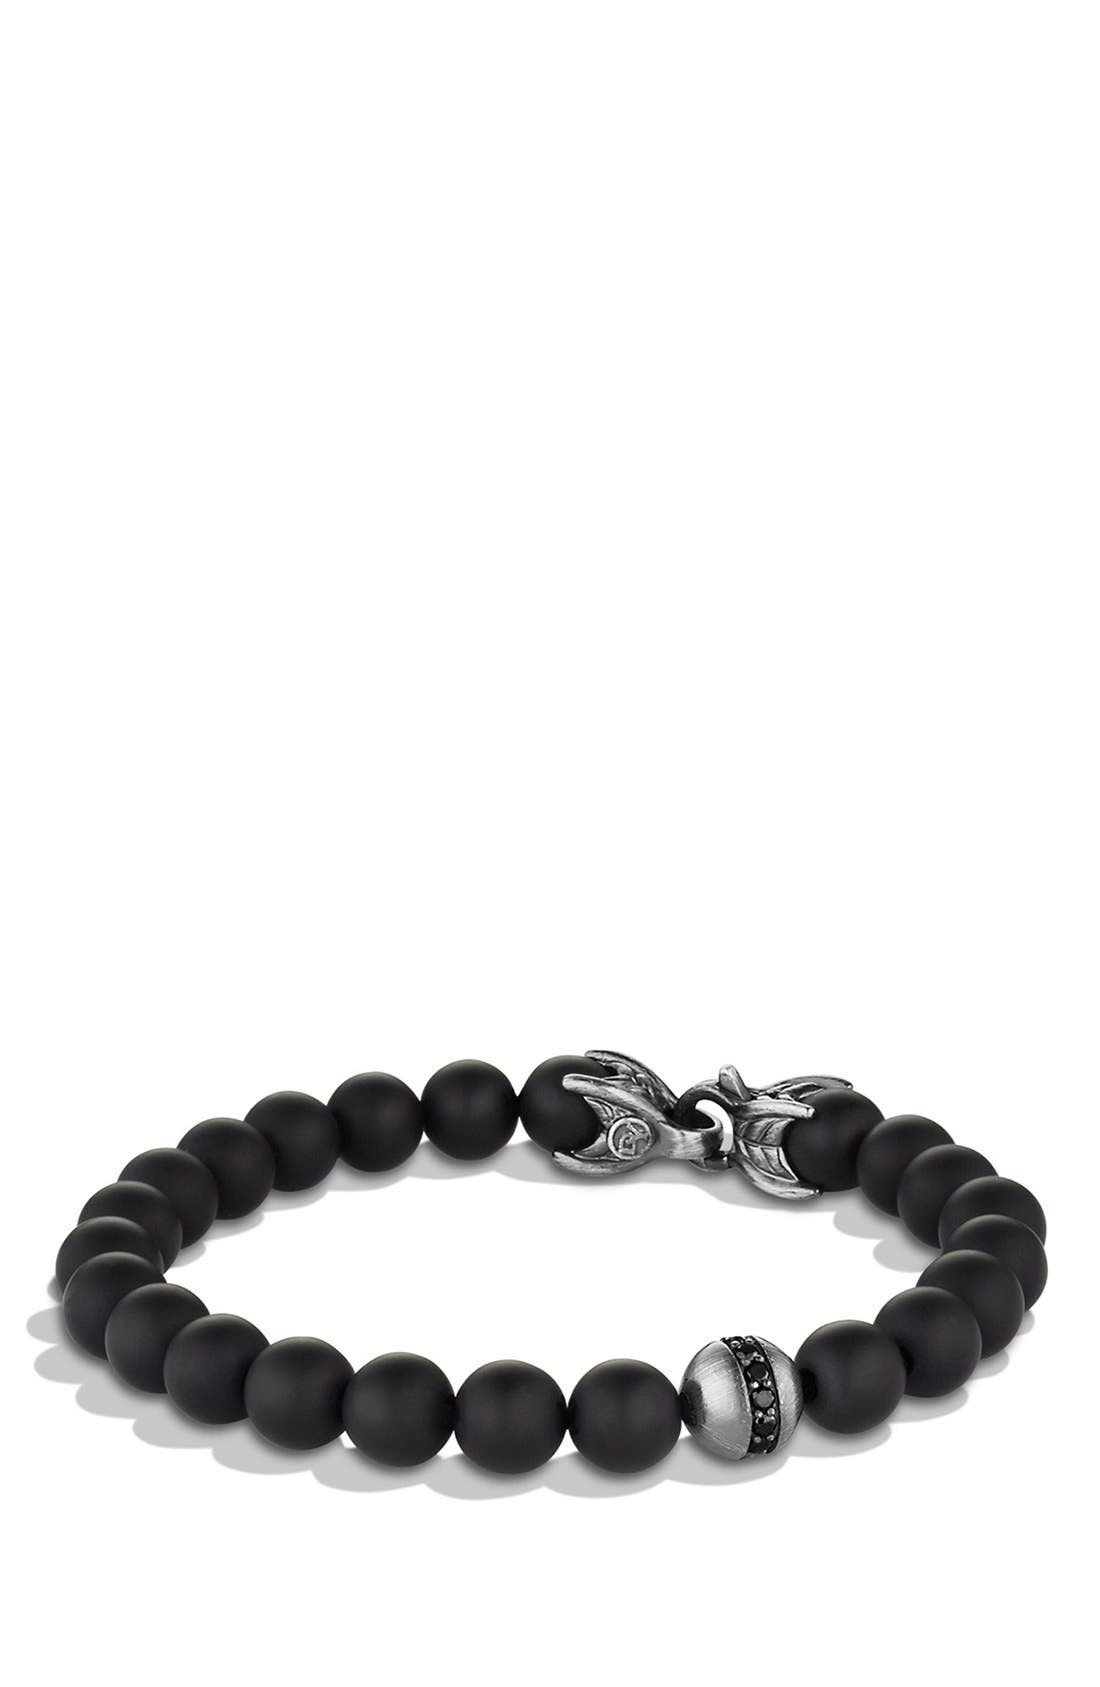 David Yurman 'Spiritual Beads' Bracelet with Black Onyx and Black Diamonds